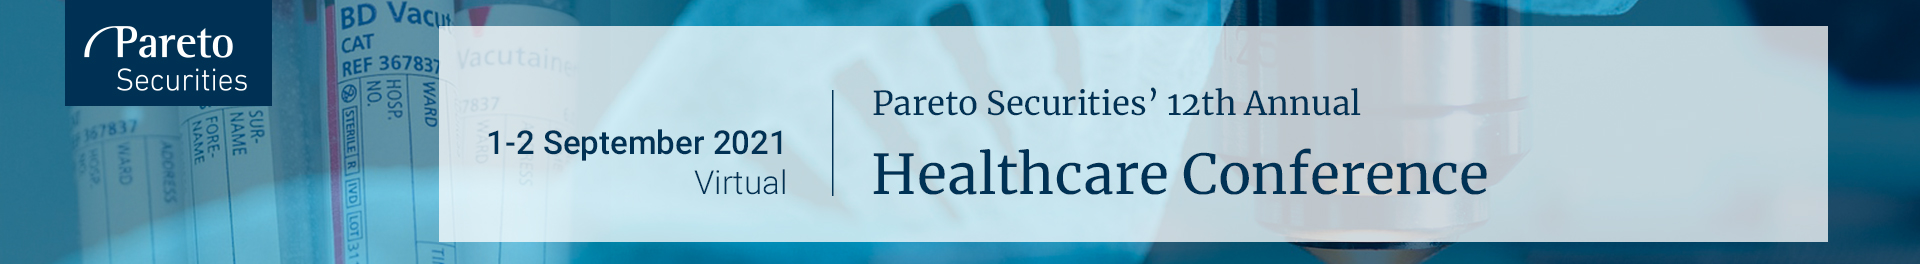 Header image for  Pareto Securities' 12th Annual Healthcare Conference